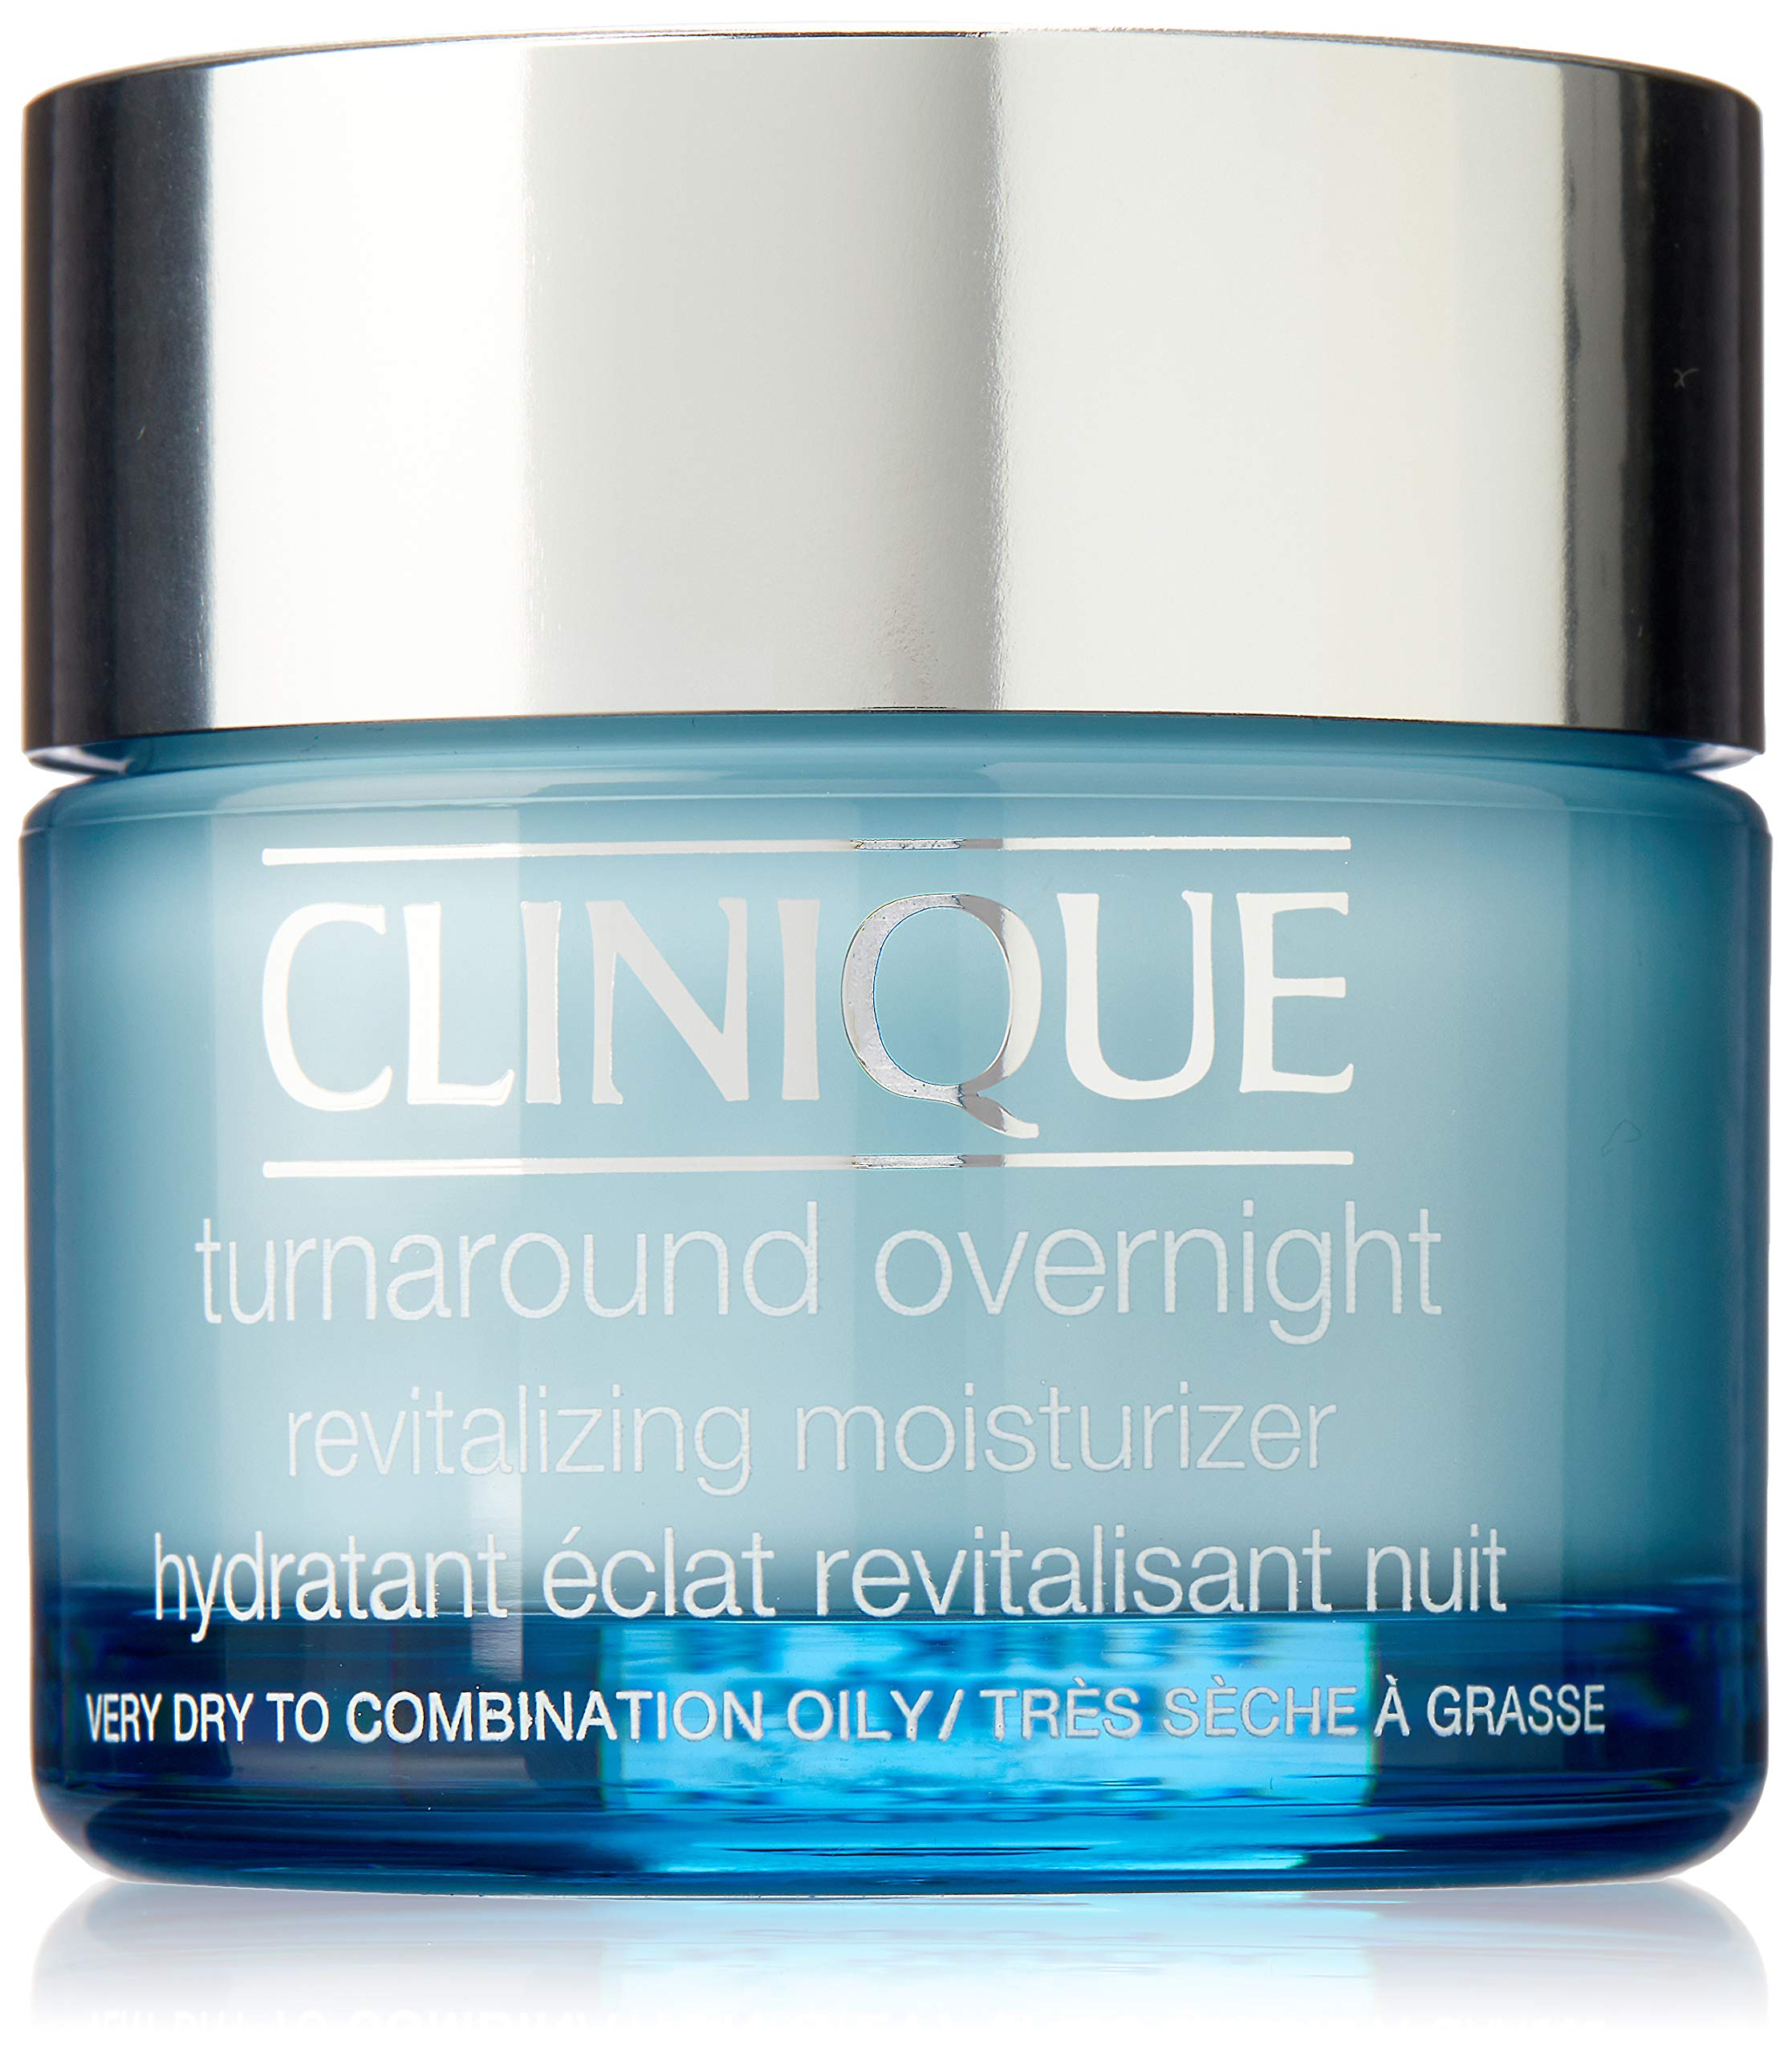 Clinique Turnaround Overnight Revitalizing Moisturizer for Women, 1.7 Ounce by Clinique